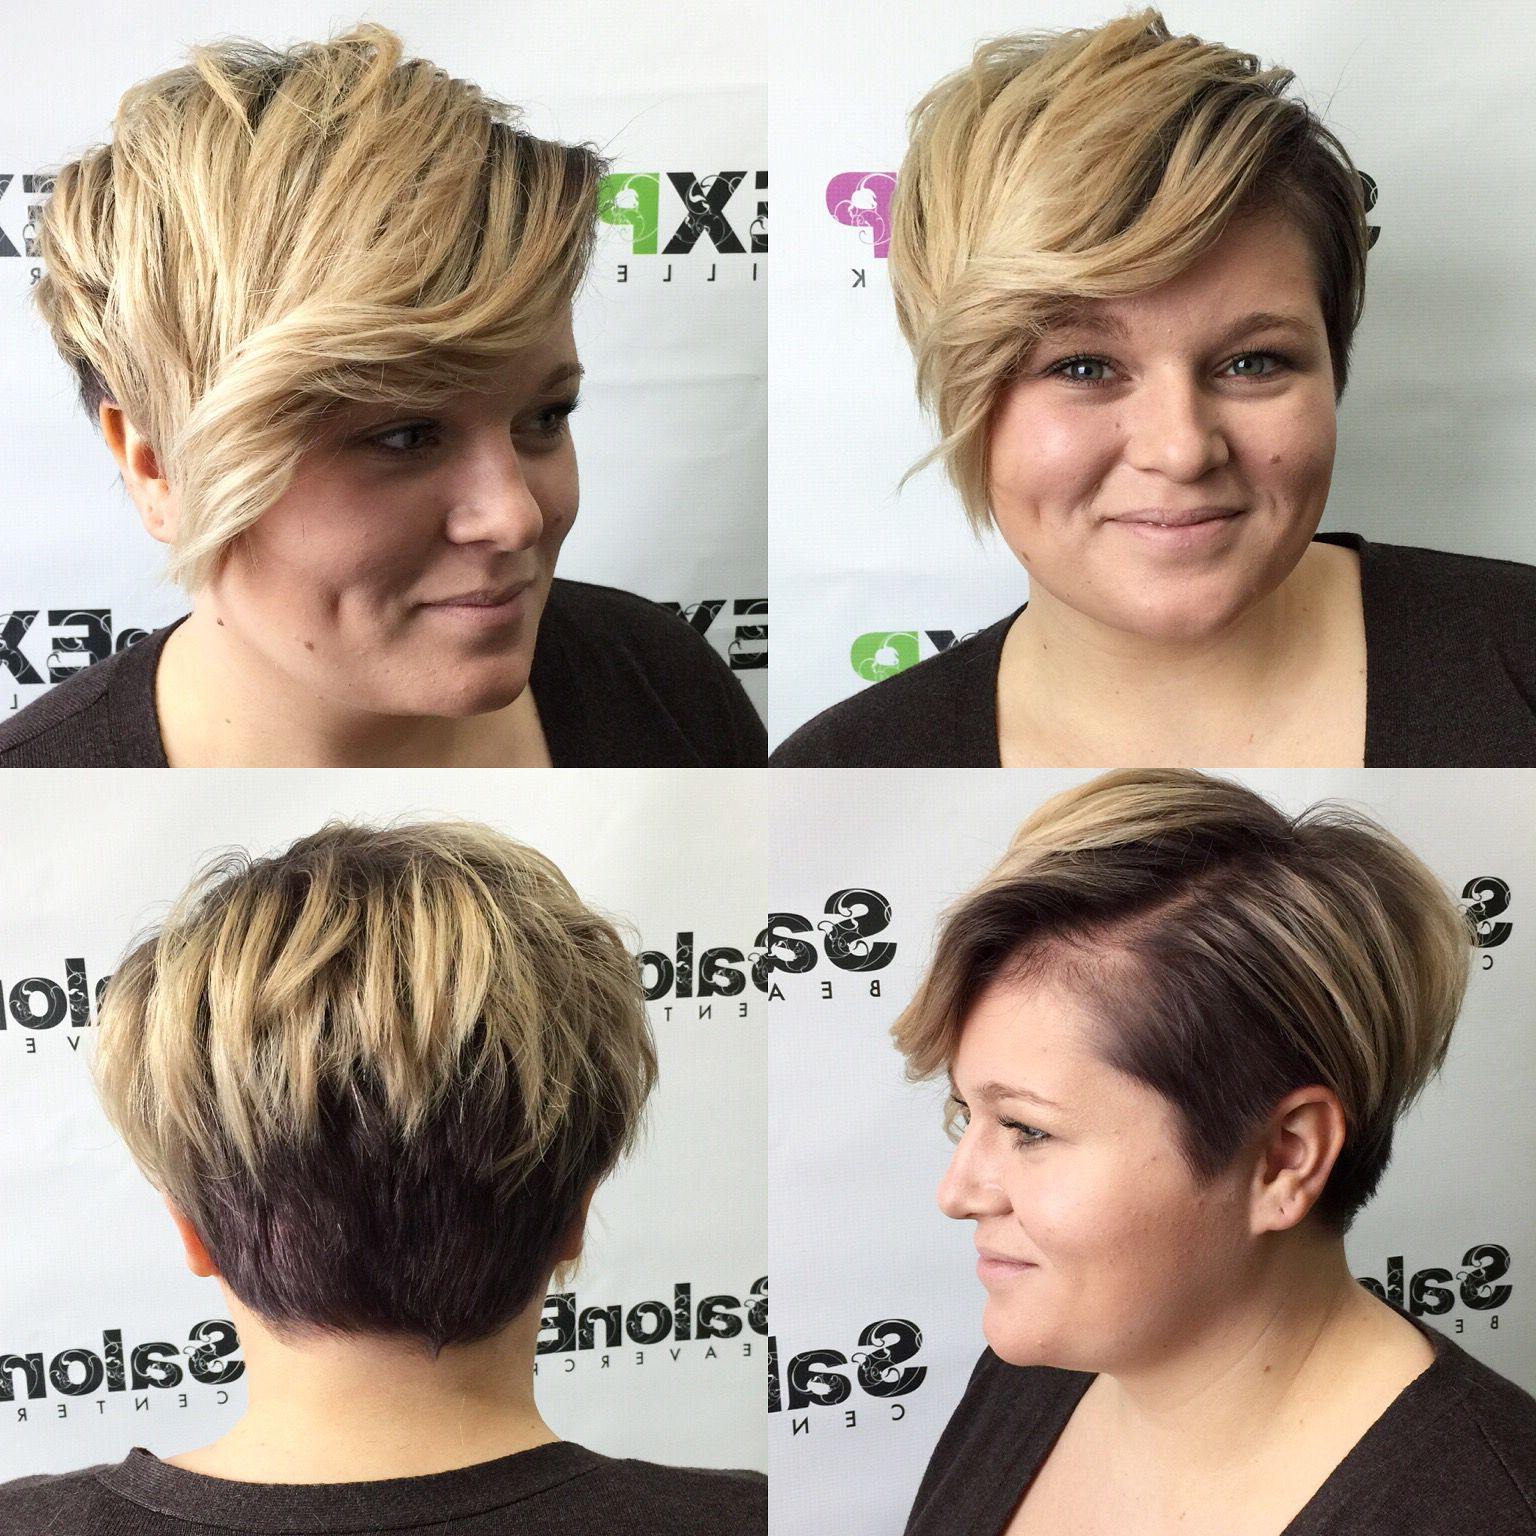 20 Best Ideas Of Disconnected Pixie Hairstyles For Short Hair